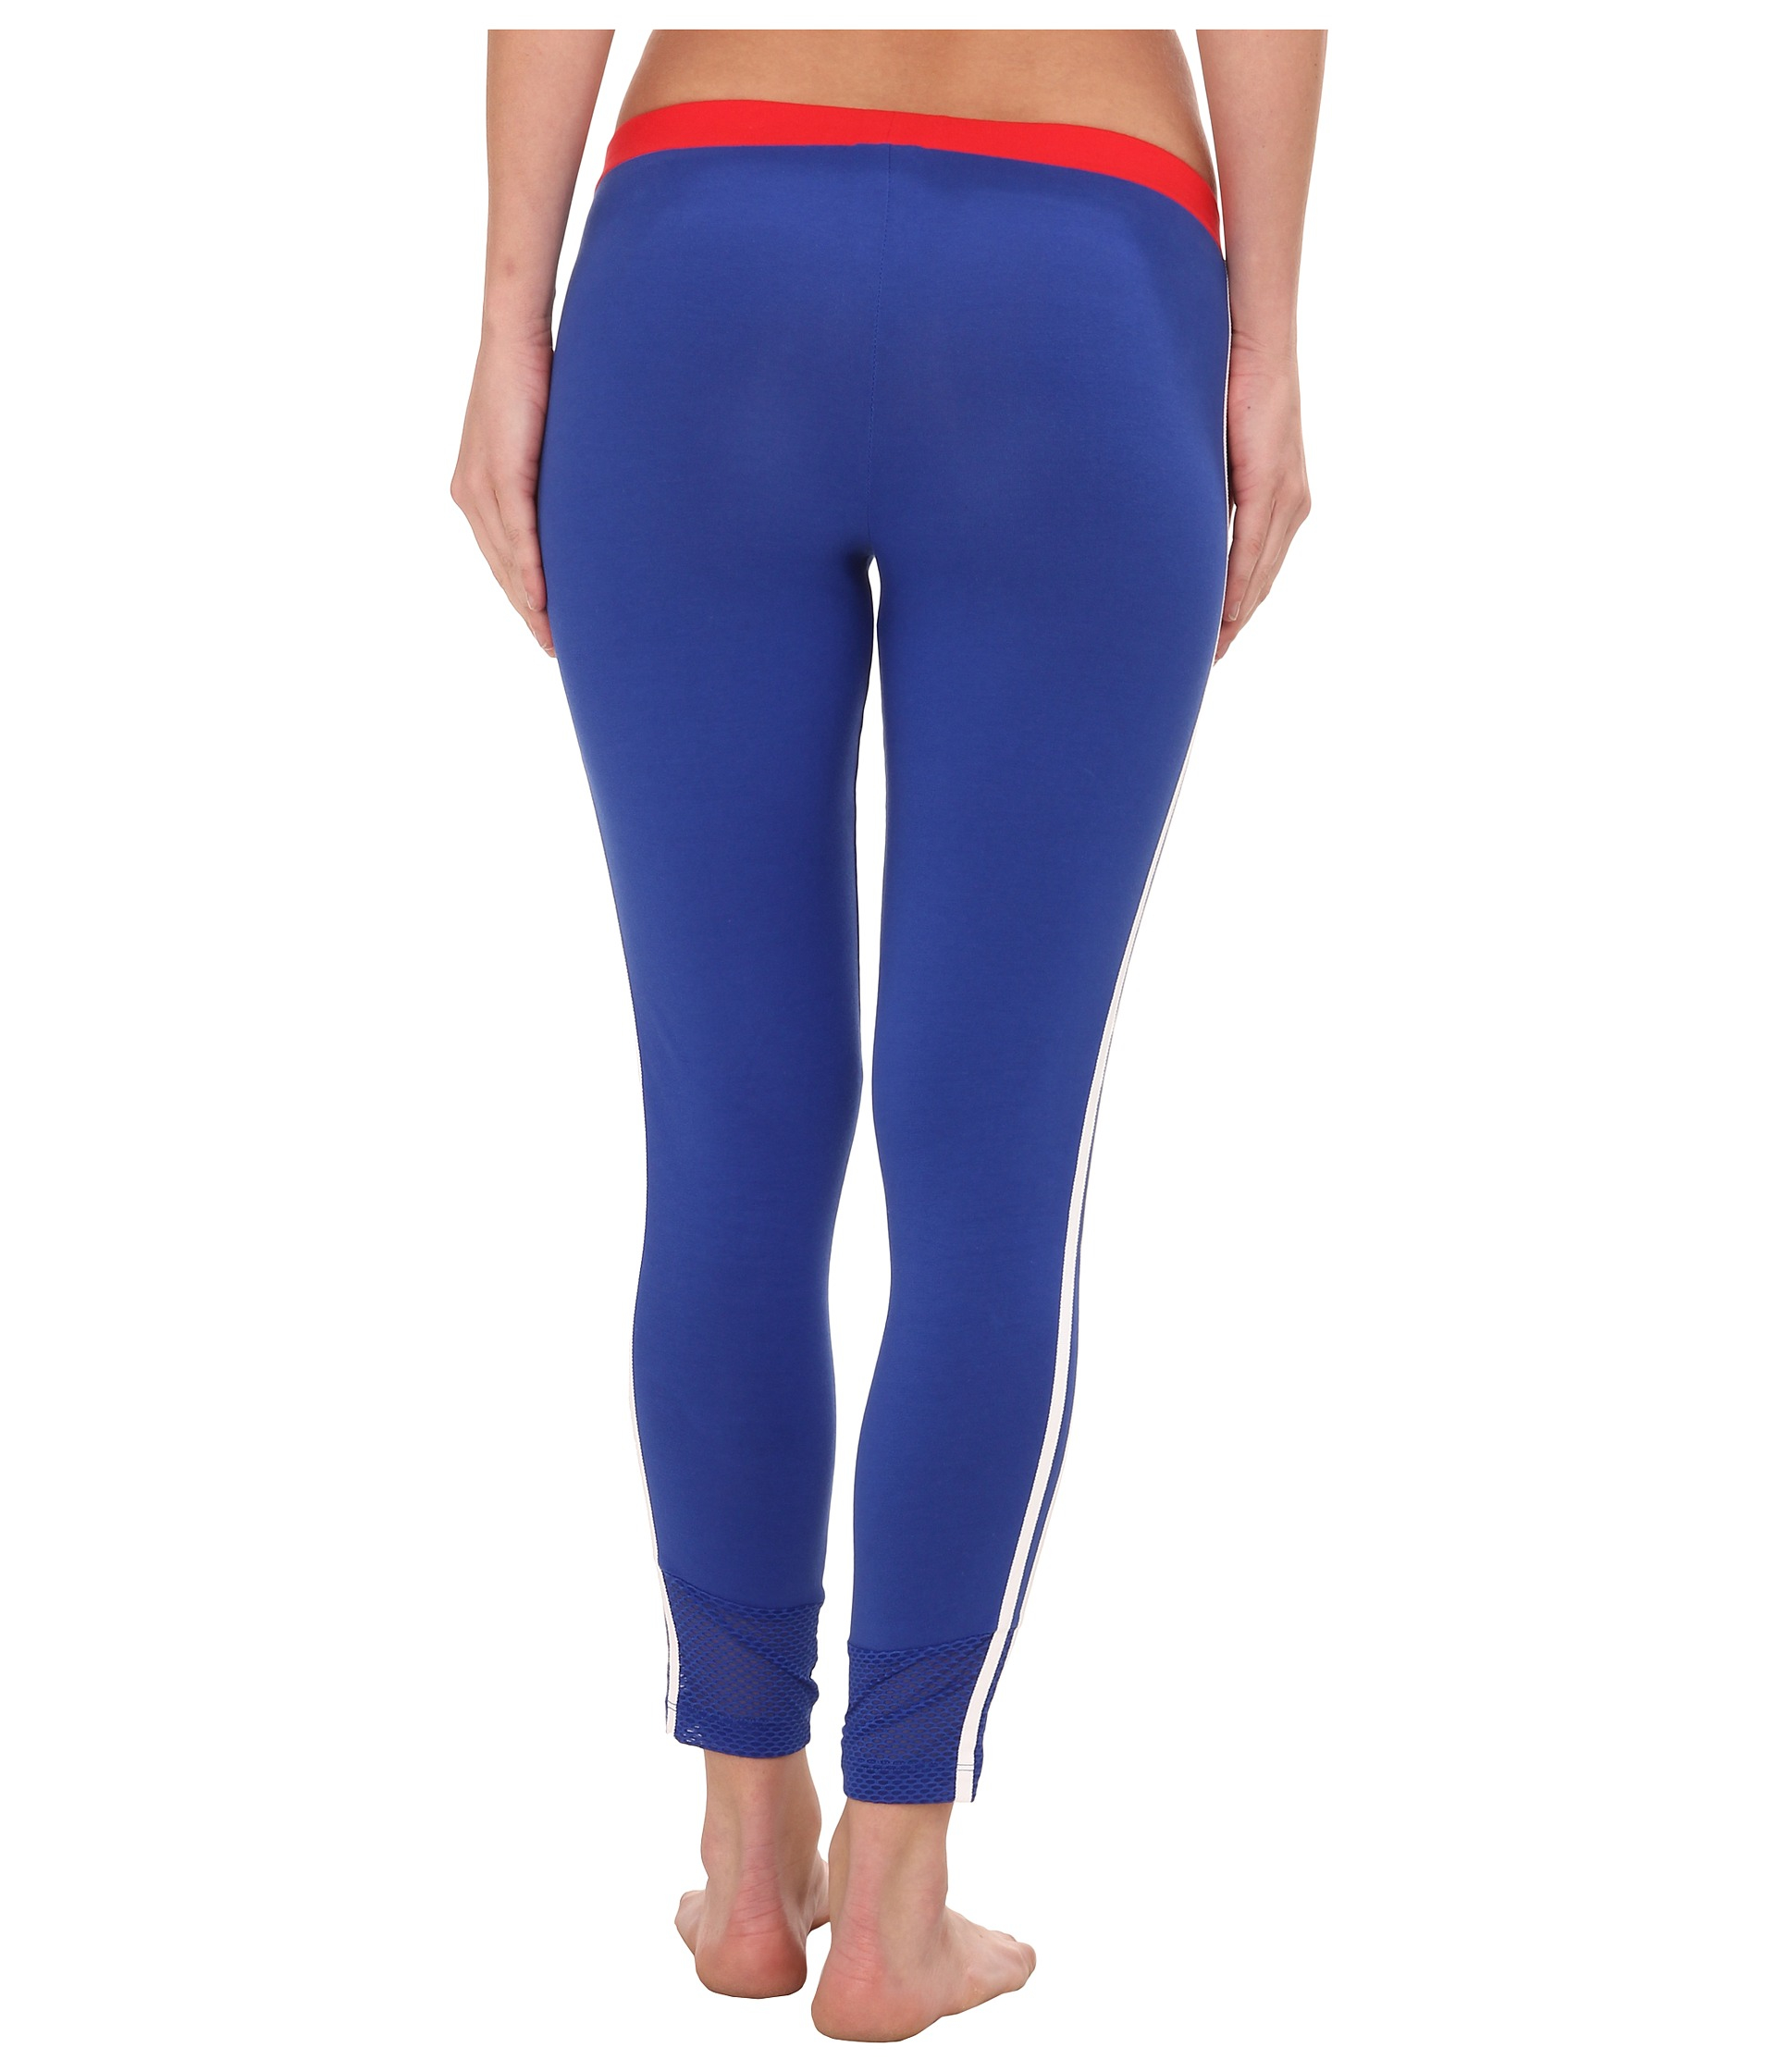 Adidas Colorful Legging Pinterest Adidas Pictures Colorful para Pin en Pinterest PinsDaddy 226175c - rspr.host